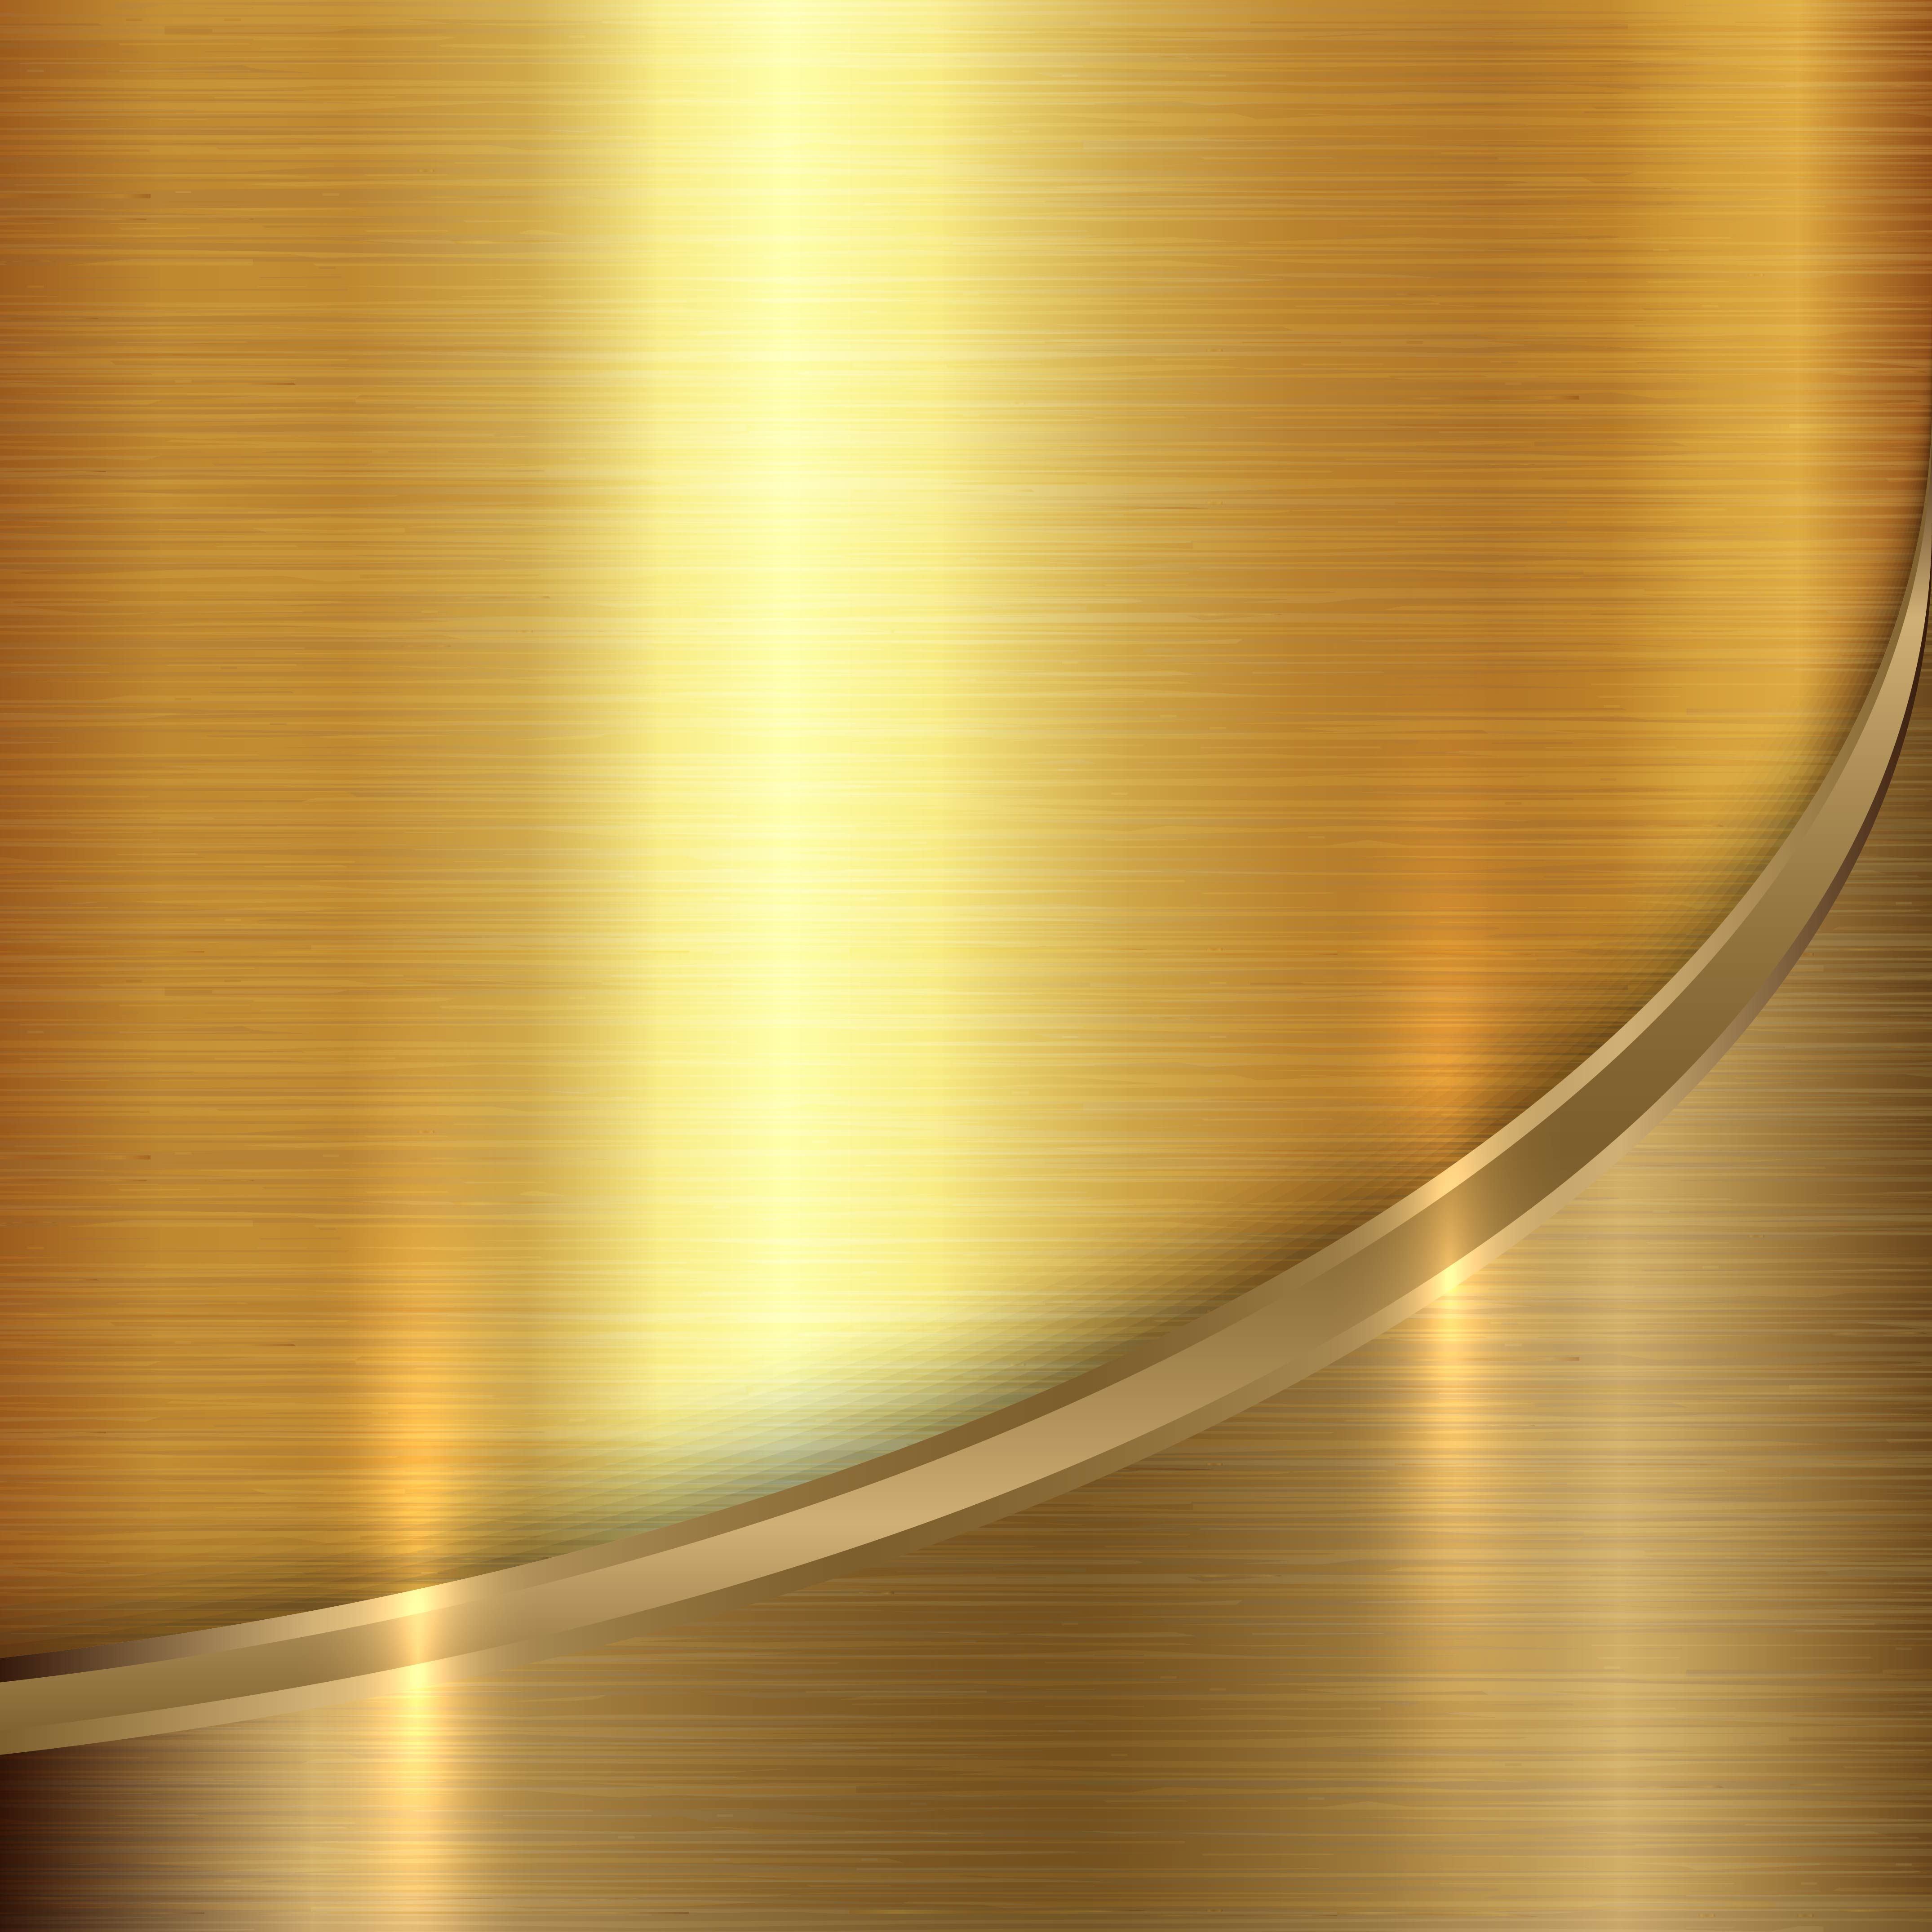 Gold Metal Background Texture Vector Material Metal Background Gold Background Metal Background Texture